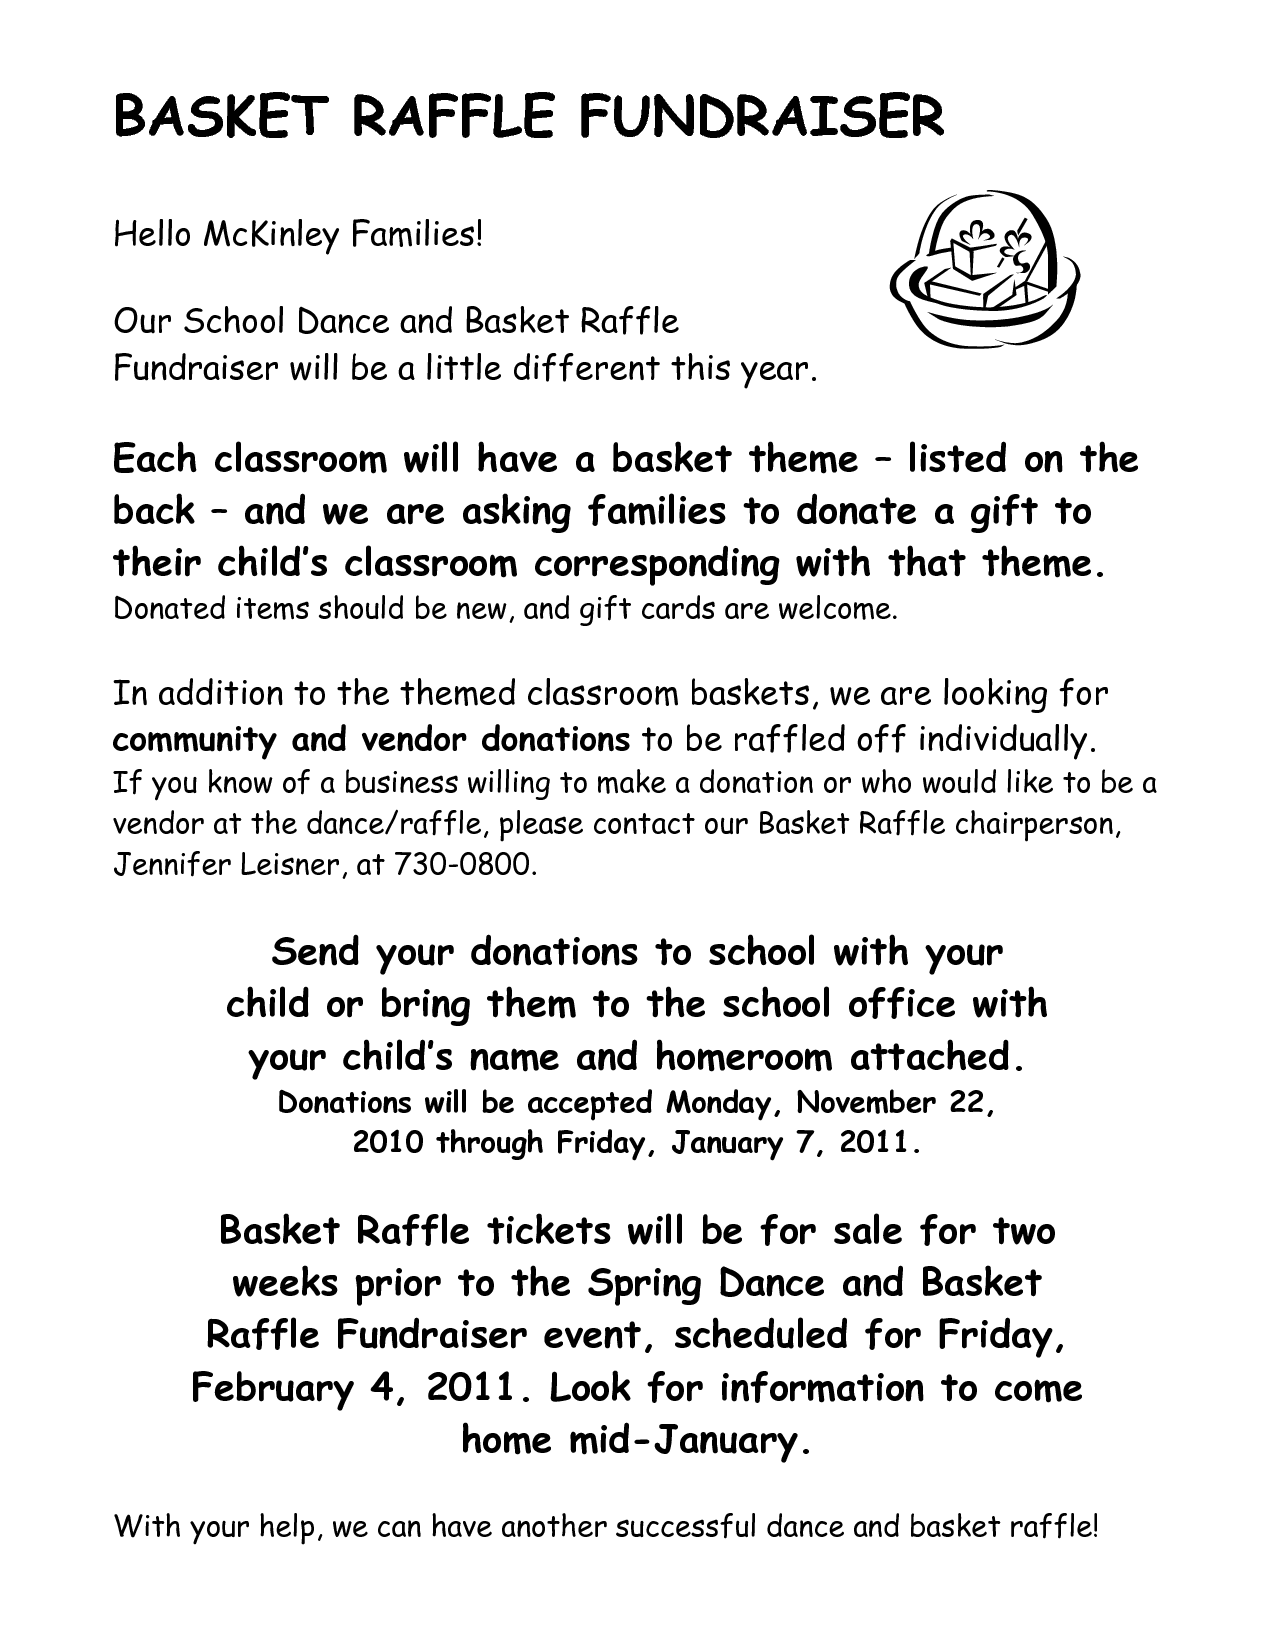 scope of work template | Parent's Club | Raffle baskets